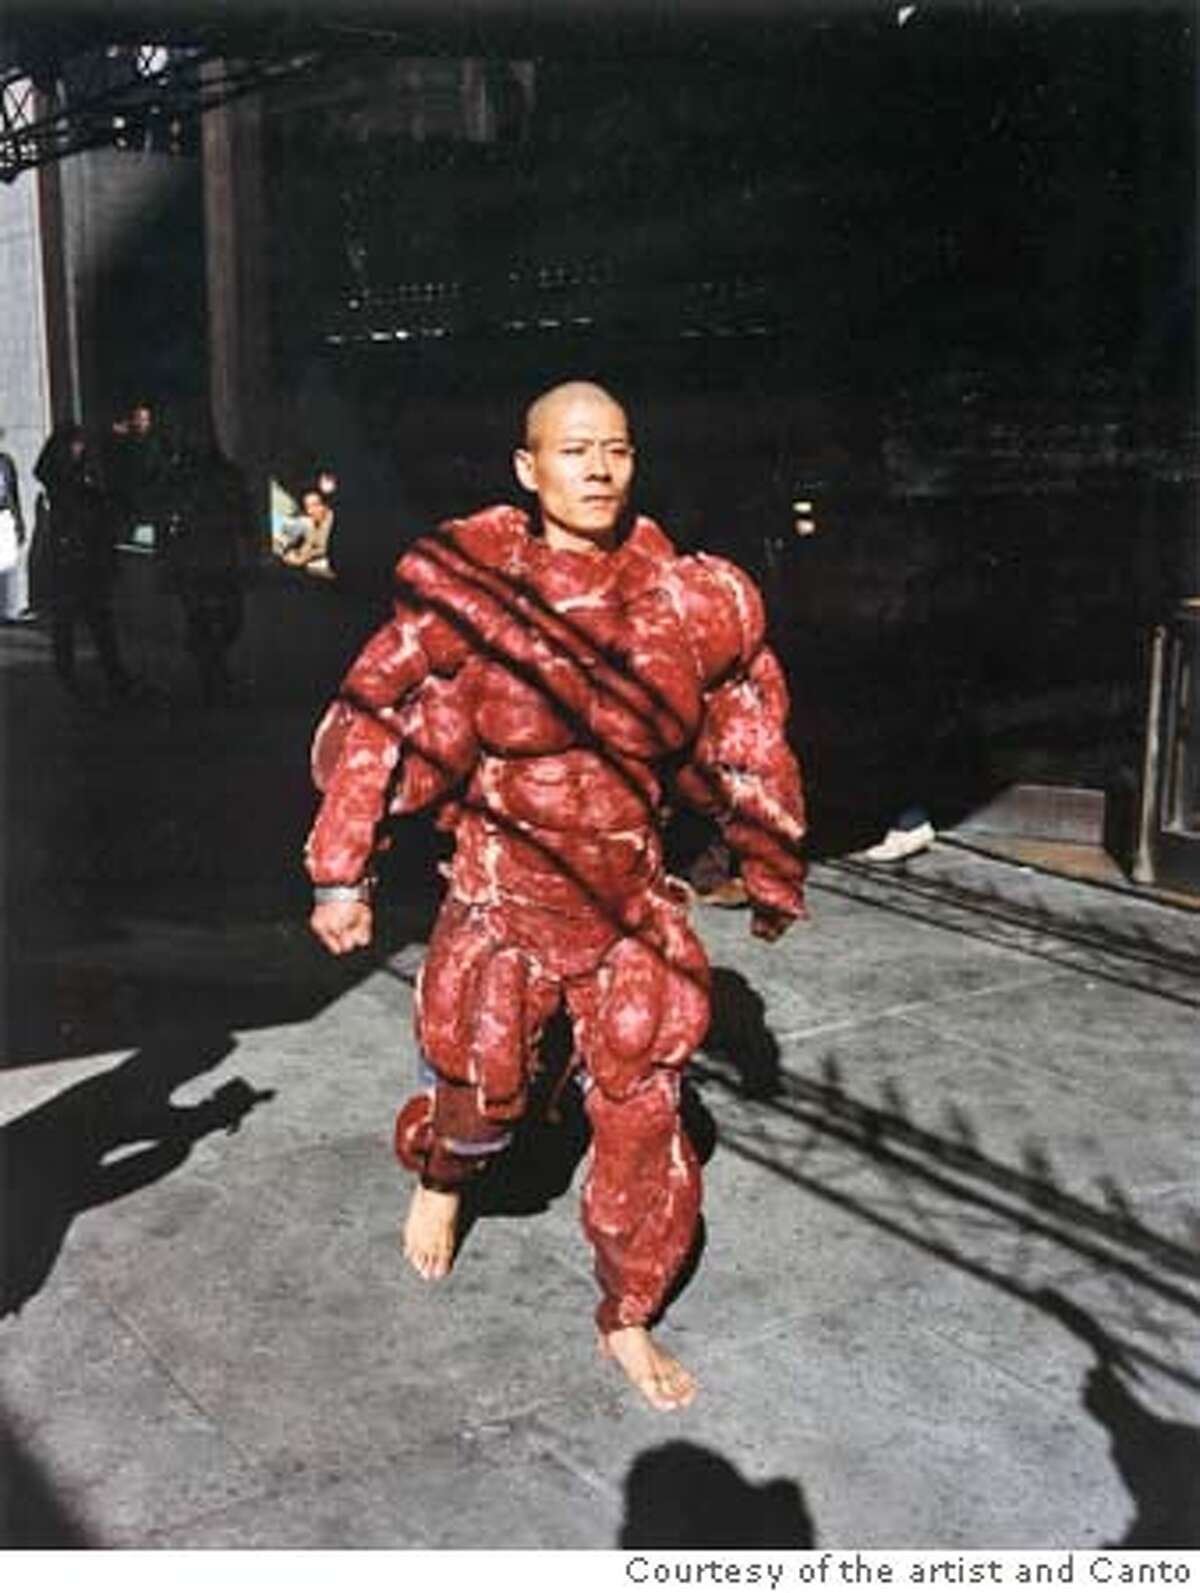 """""""My New York: #4"""" (2002) Chromogenic print by Zhang Huan. Courtesy of the artist and Cantor Center for Visual Arts, Stanford University"""